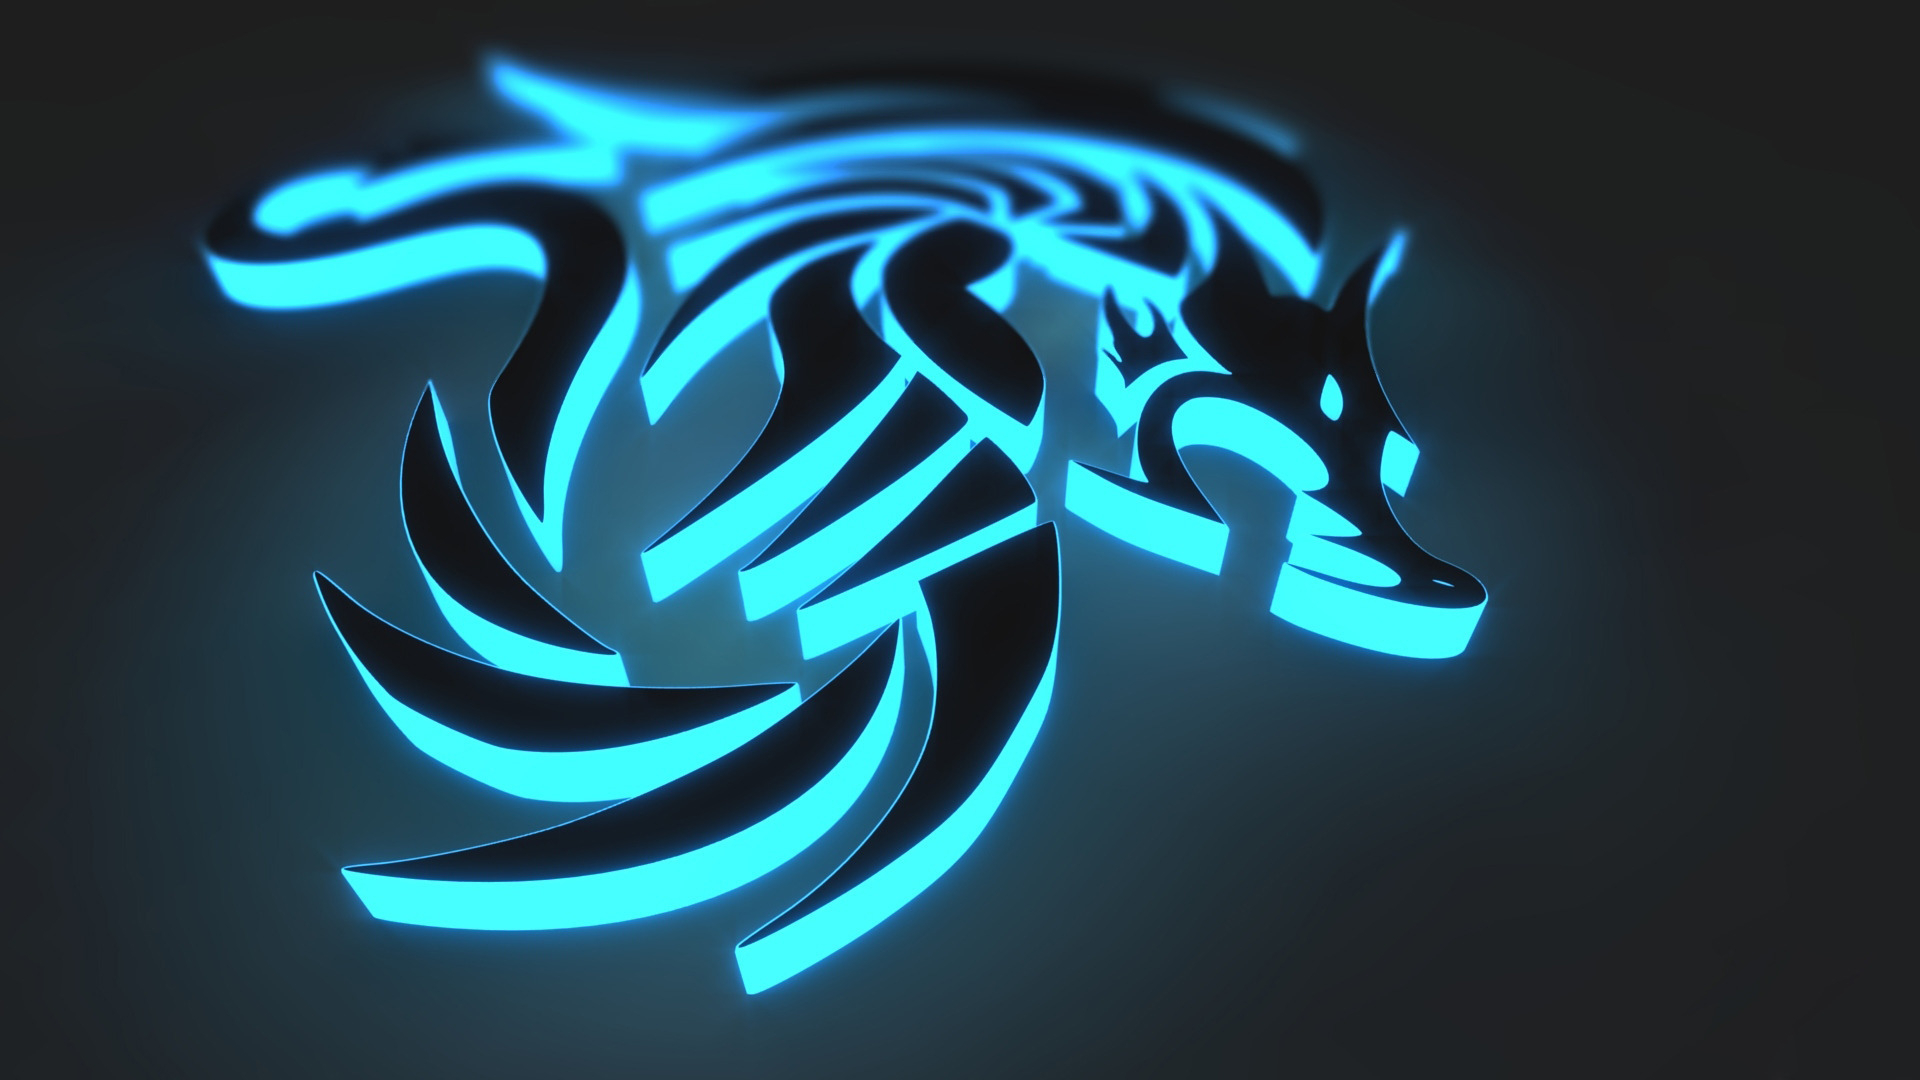 Dragon Wallpapers 3D wallpaper   654645 1920x1080